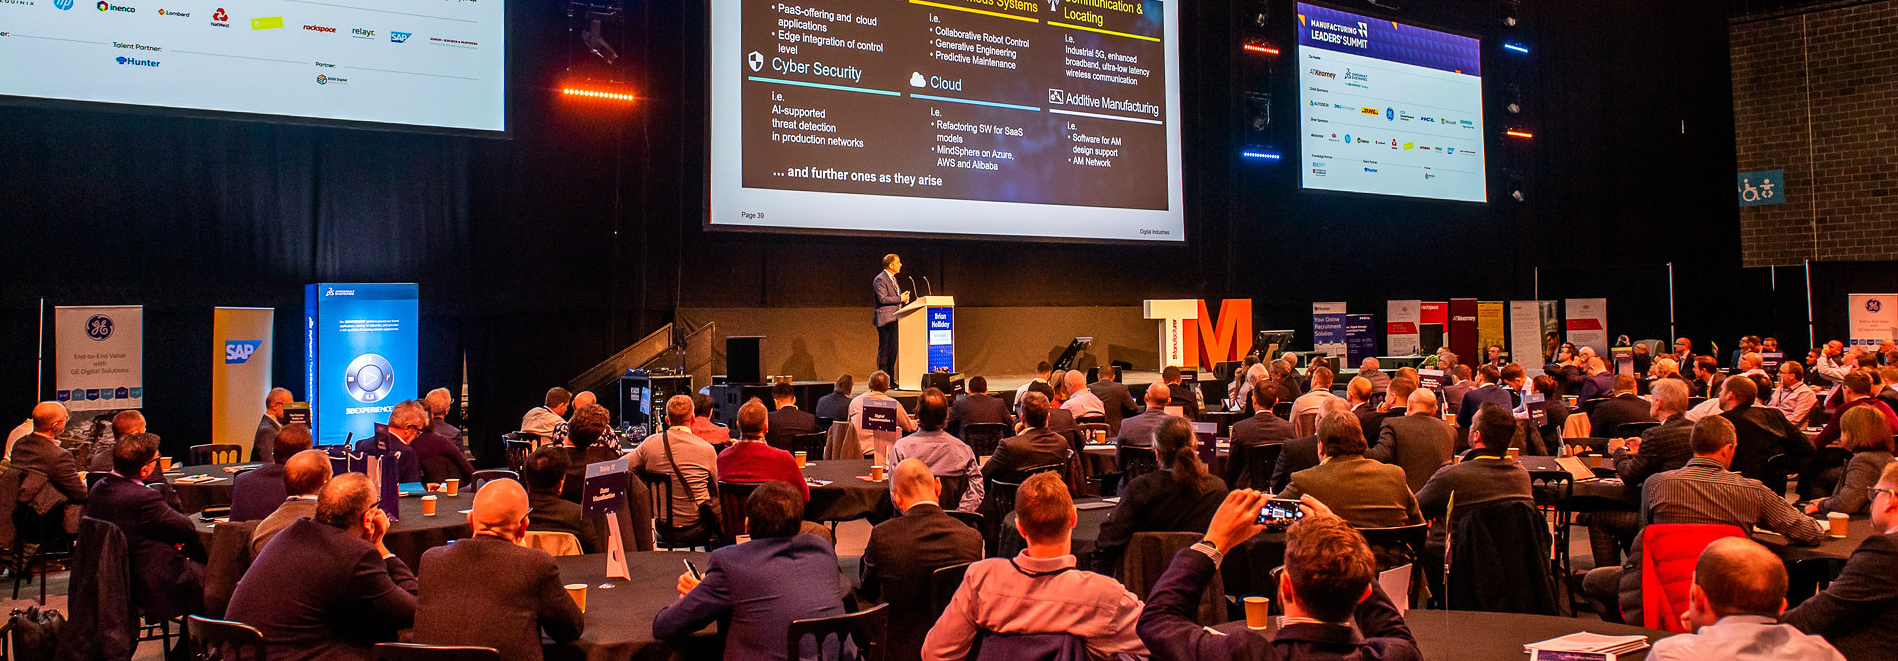 Brian Holliday, MD of Digital Industries at Siemens, took to the main stage at Manufacturing Leaders' Summit 2019 - image courtesy of The Manufacturer.